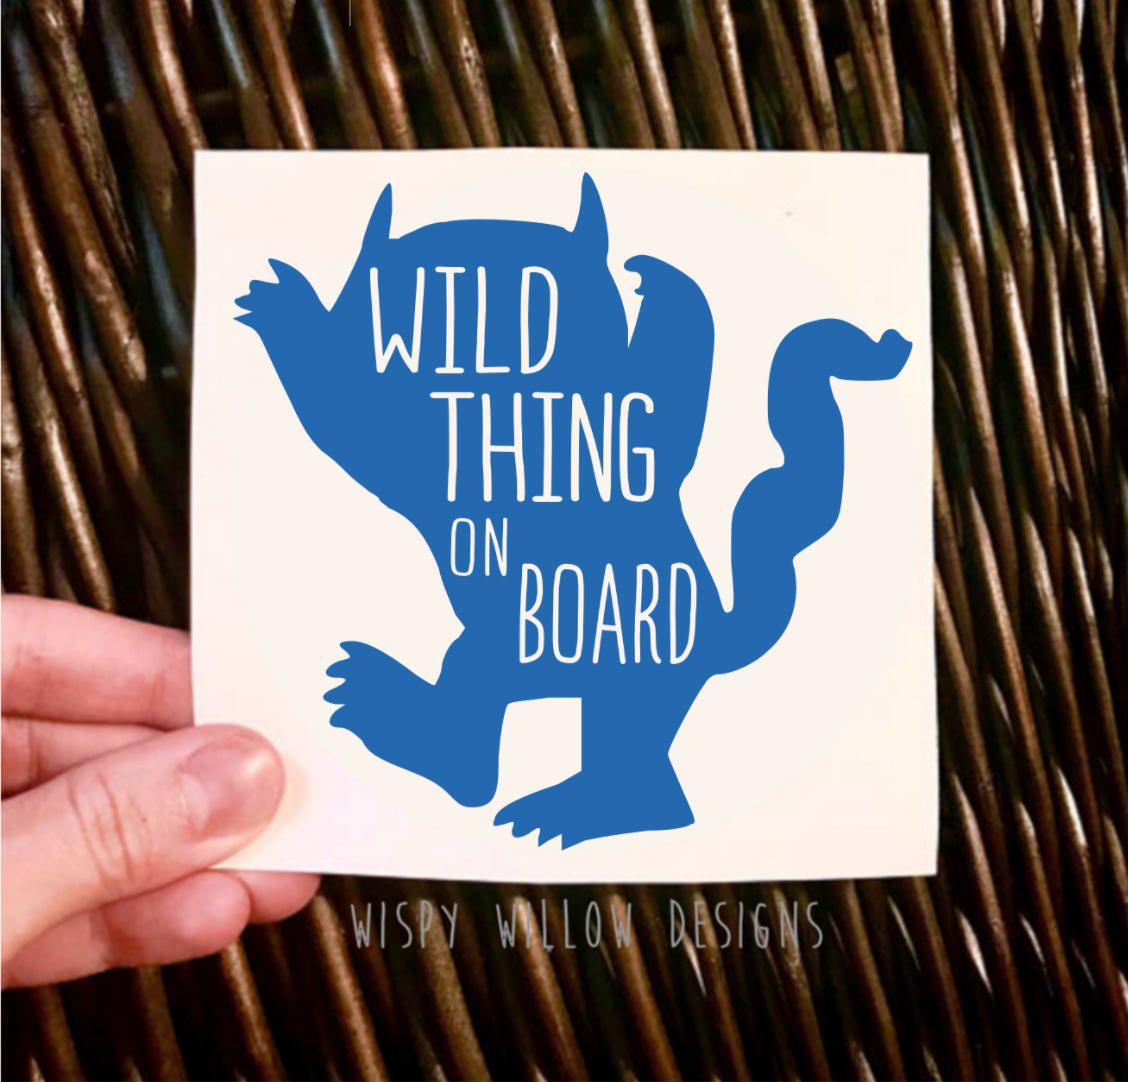 Wild Thing On Board Vinyl Decal Sticker Car Decal Mom Decal Where The Wild Things Are Kids Kid Monster Vinyl Decal Stickers Vinyl Decals Window Stickers [ 1082 x 1128 Pixel ]